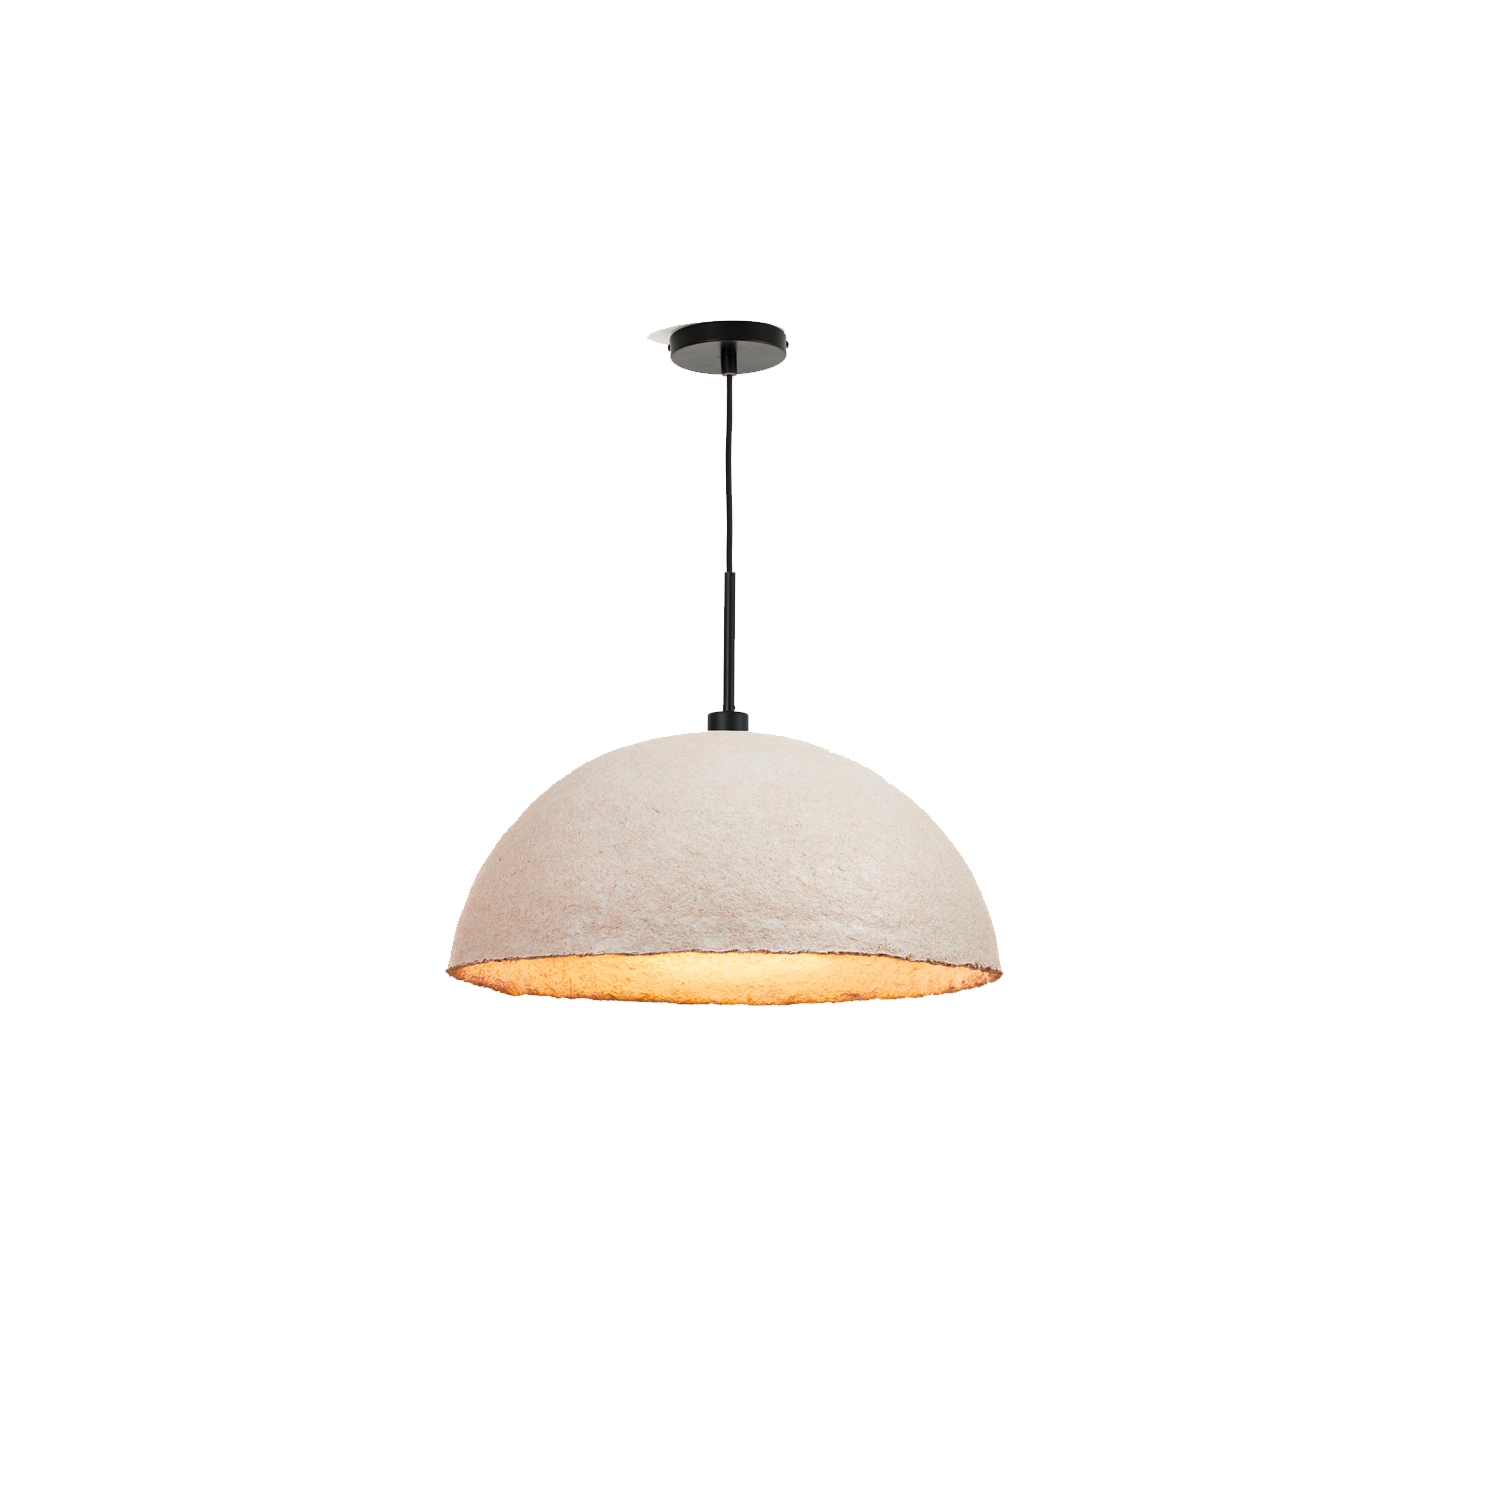 MushLume Hemi Pendant Light - These organic lampshades by Grown Bio take your lighting design to the next level! The dome is fully biodegradable and is made of mycelium. Over the period of a couple of days, the mycelium binds together the natural fibers. Your lampshade will thus literally be grown on demand and will entirely unique. Each pendant comes with a ceiling cap, a textile cable of 200cm and an E27 fitting. These necessities come in either black, white or brass and might slightly differ from the photo.  This fitting only supports the usage of a LED lamp bulb (not supplied in the package). Grown Bio will start growing your light shade as soon as we have received your order. | Matter of Stuff